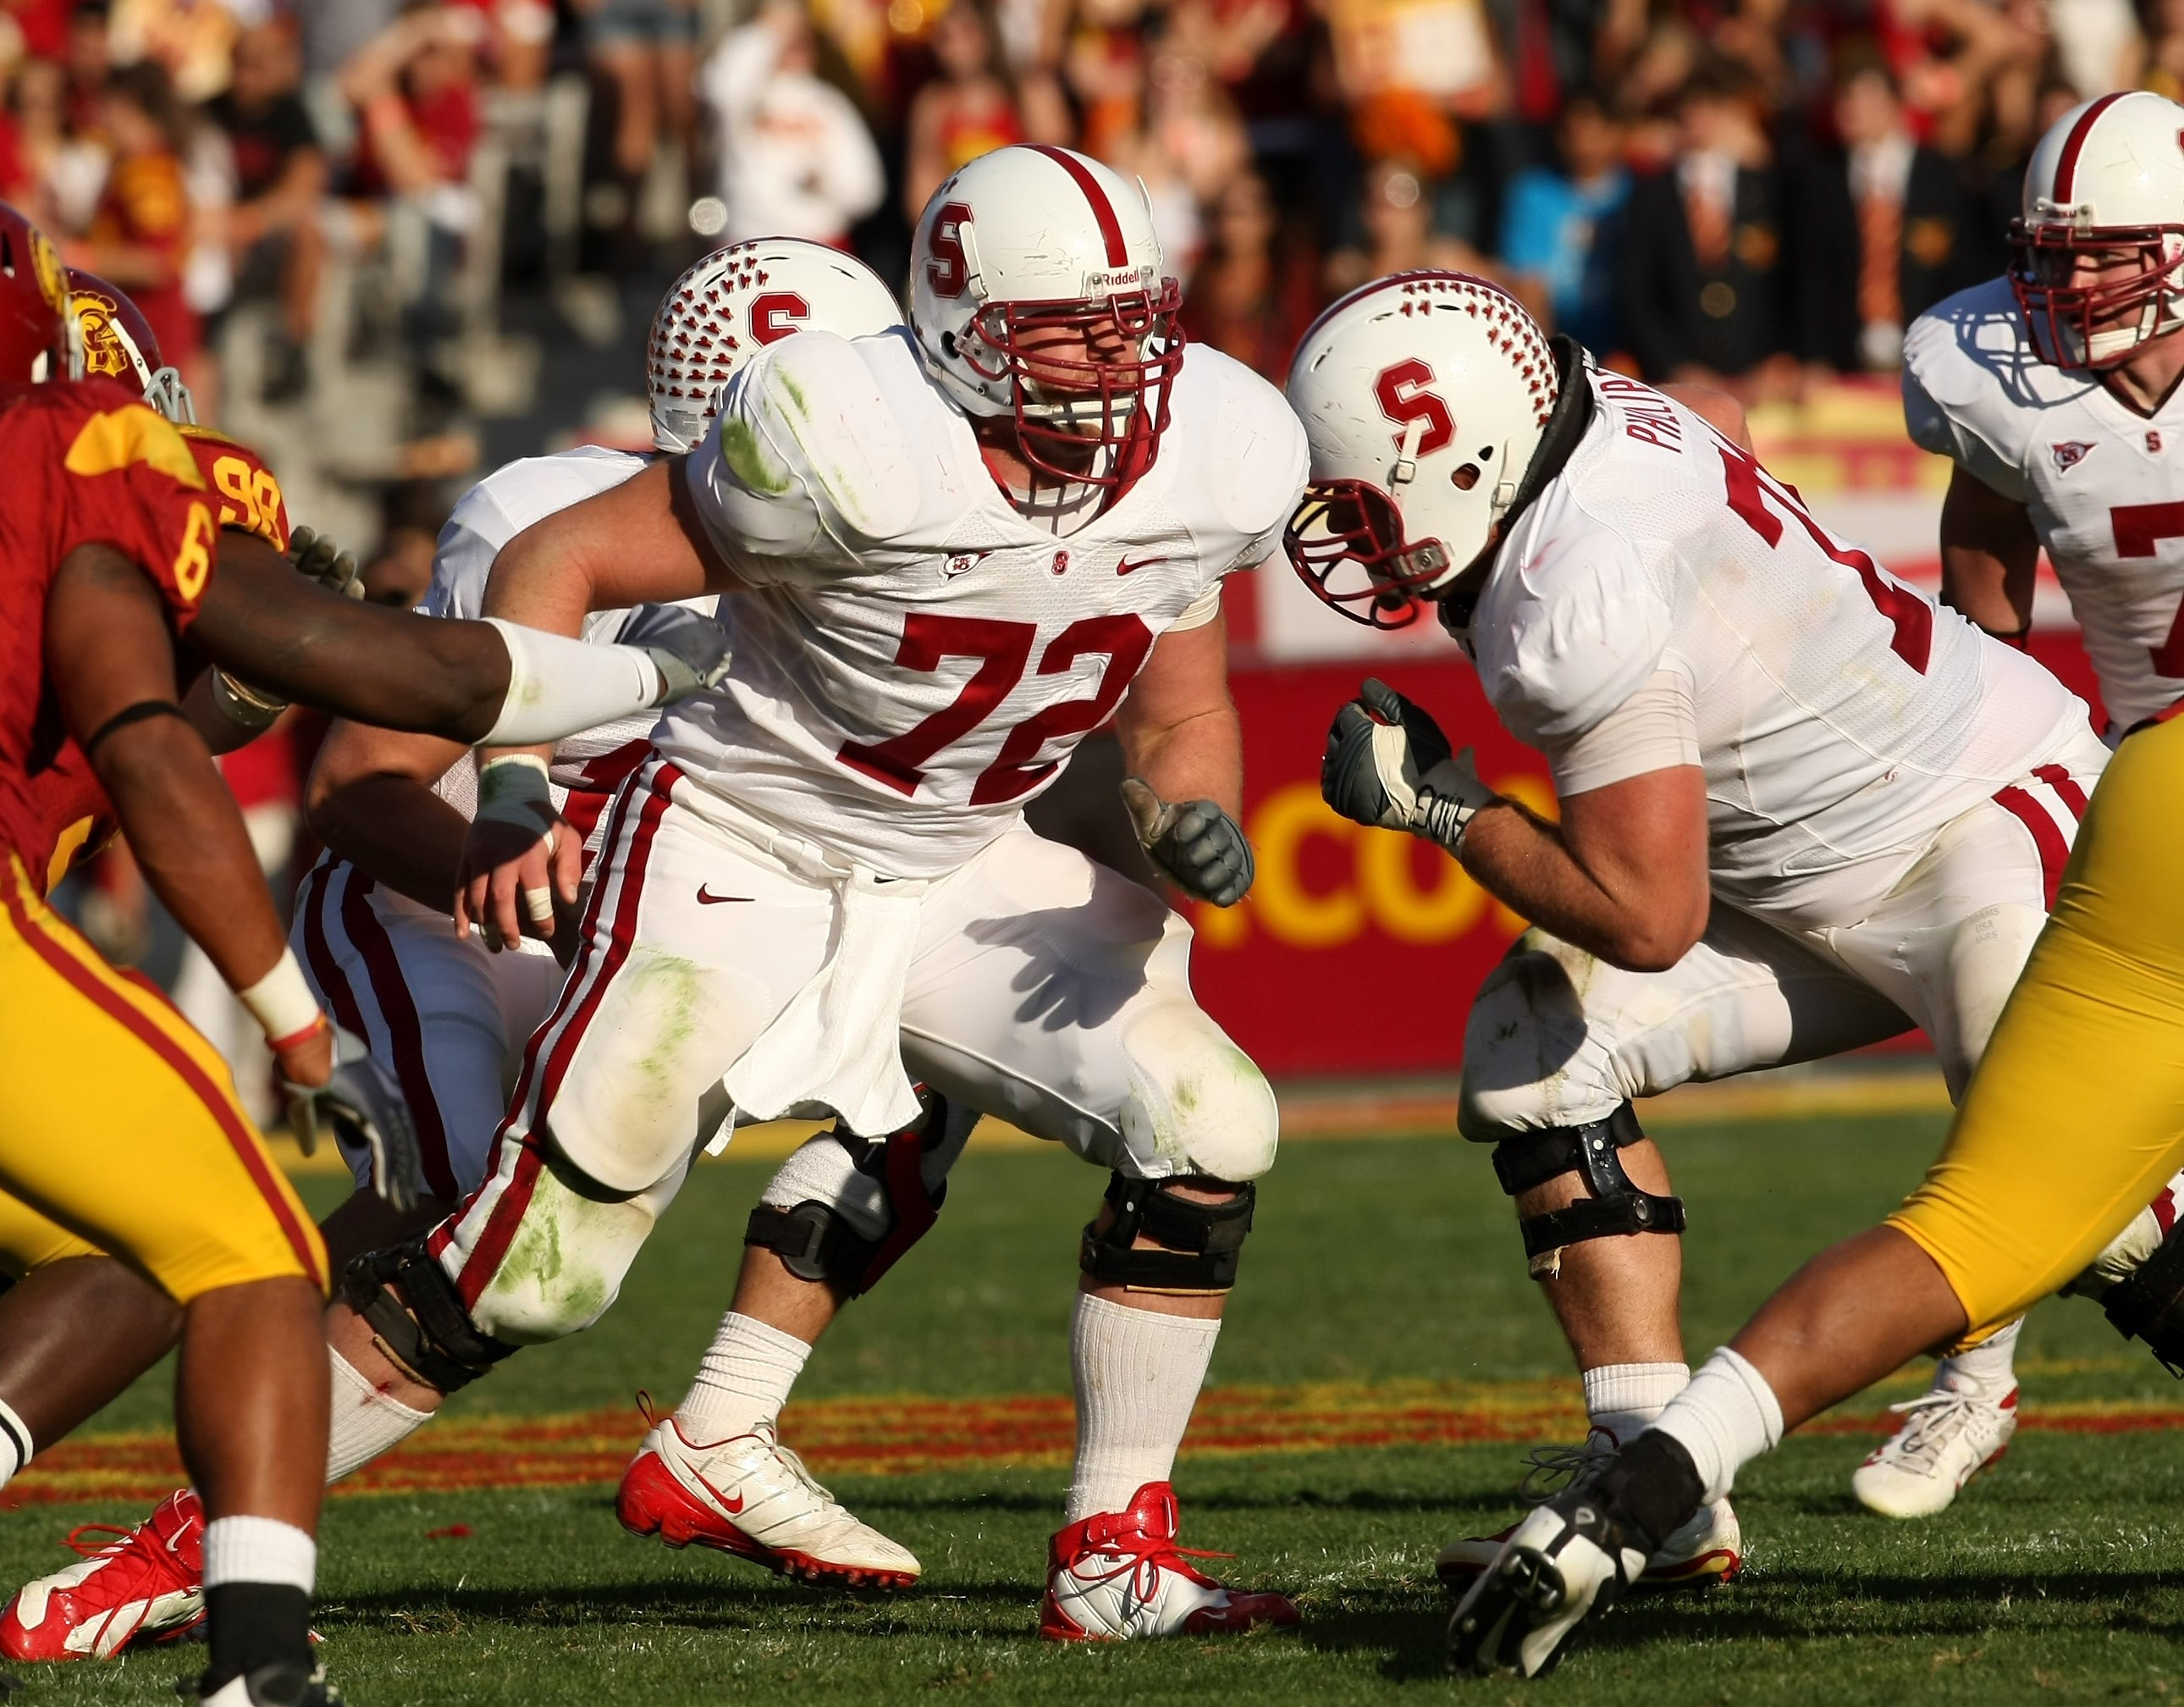 LOS ANGELES - NOVEMBER 14:  Offensive guard Chase Beeler #72 of the Stanford Cardinal blocks against  the USC Trojans on November 14, 2009 at the Los Angeles Coliseum in Los Angeles, California.  Stanford won 55-21.   (Photo by Stephen Dunn/Getty Images)